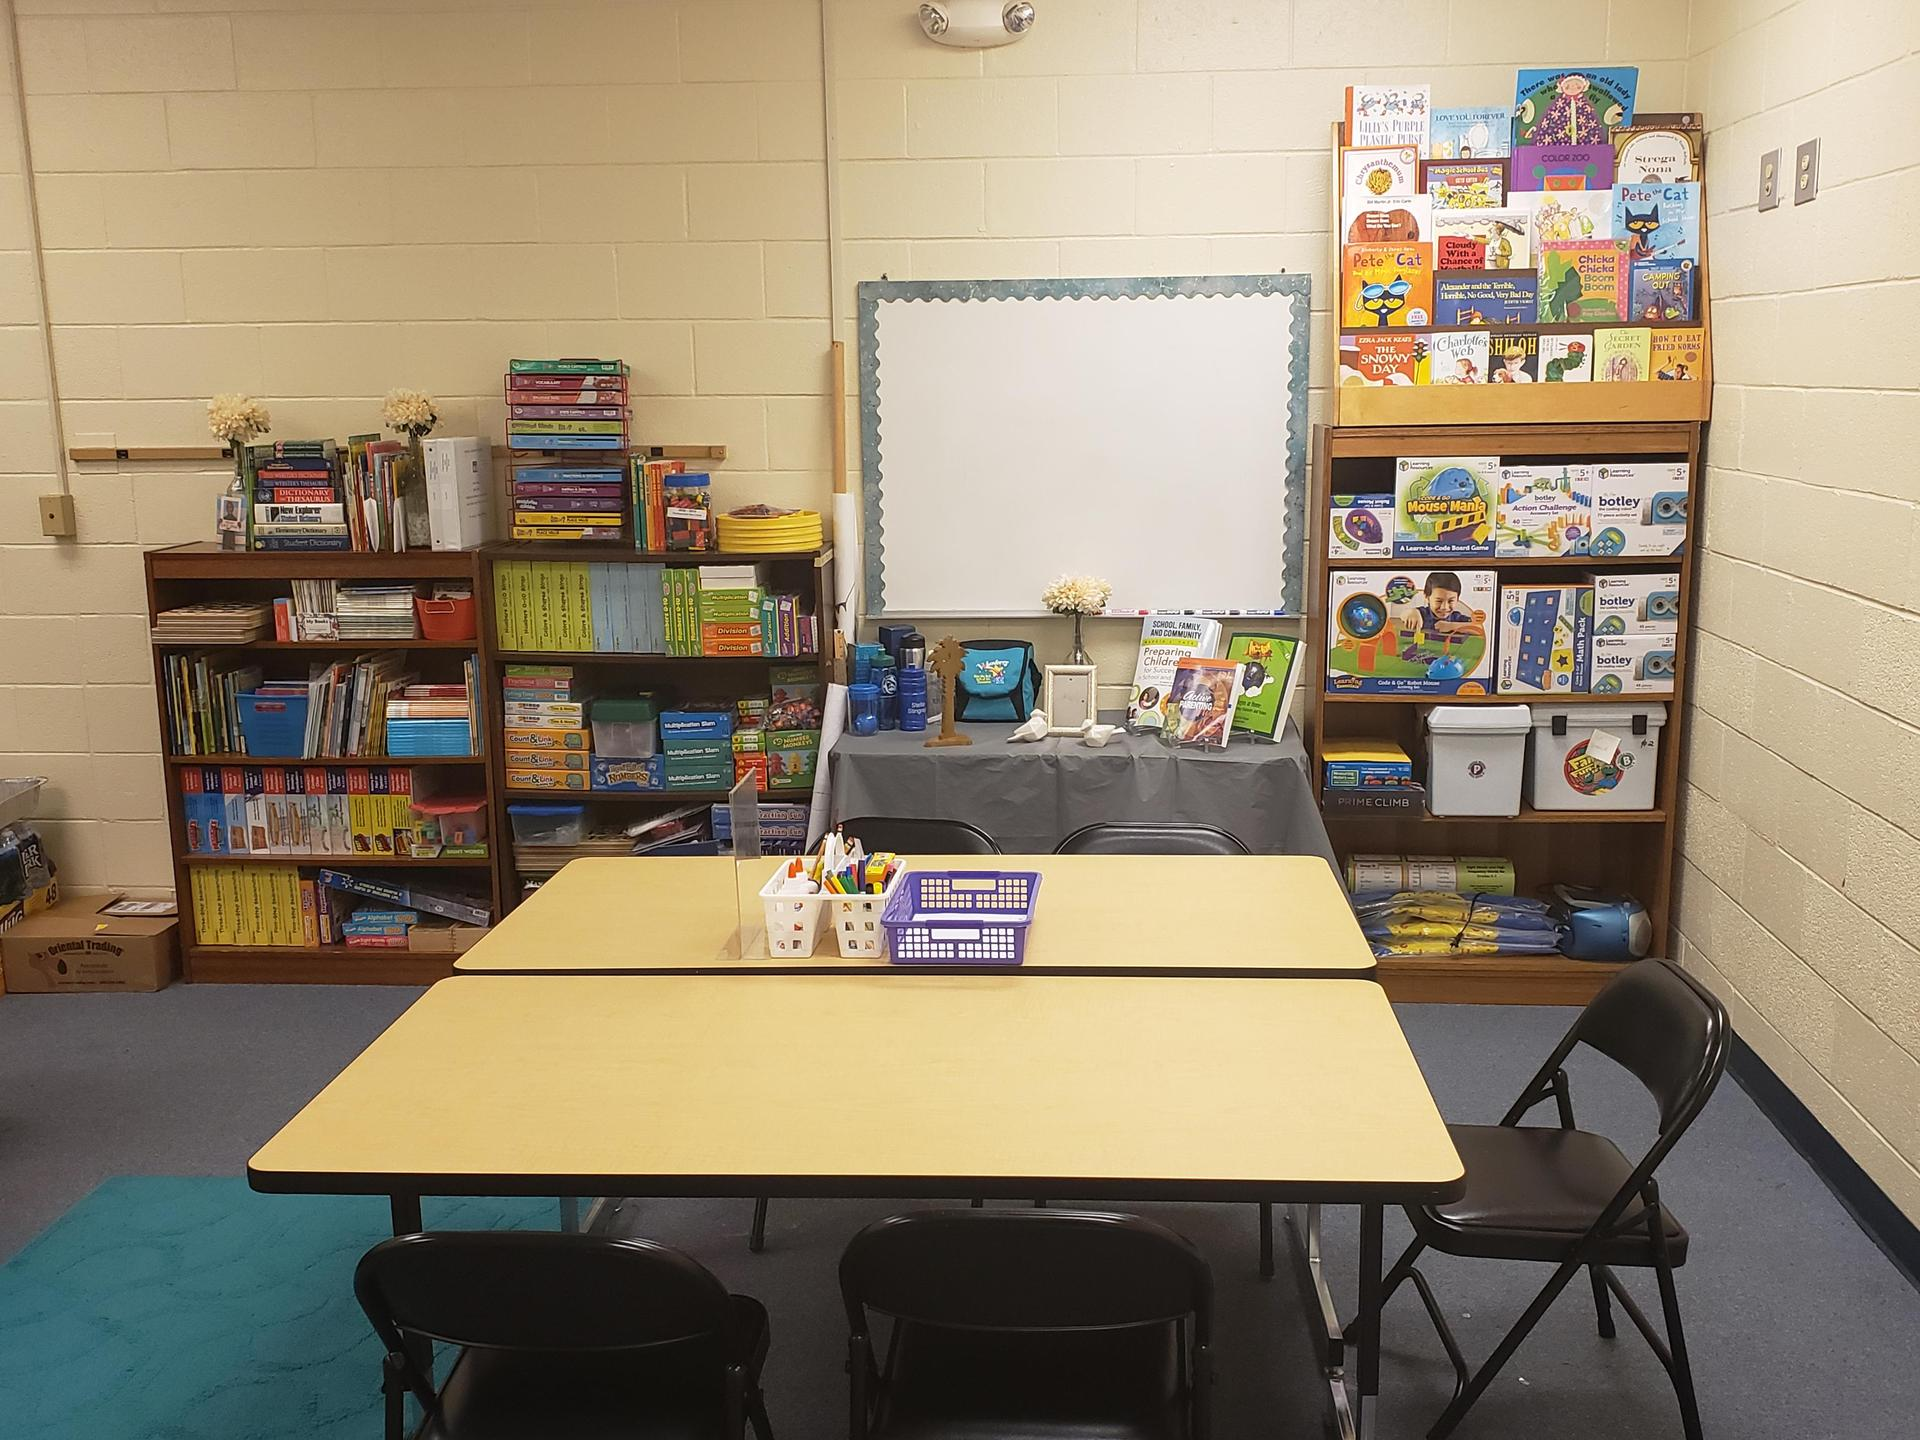 Chairs and Tables arranged in front of bookshelves